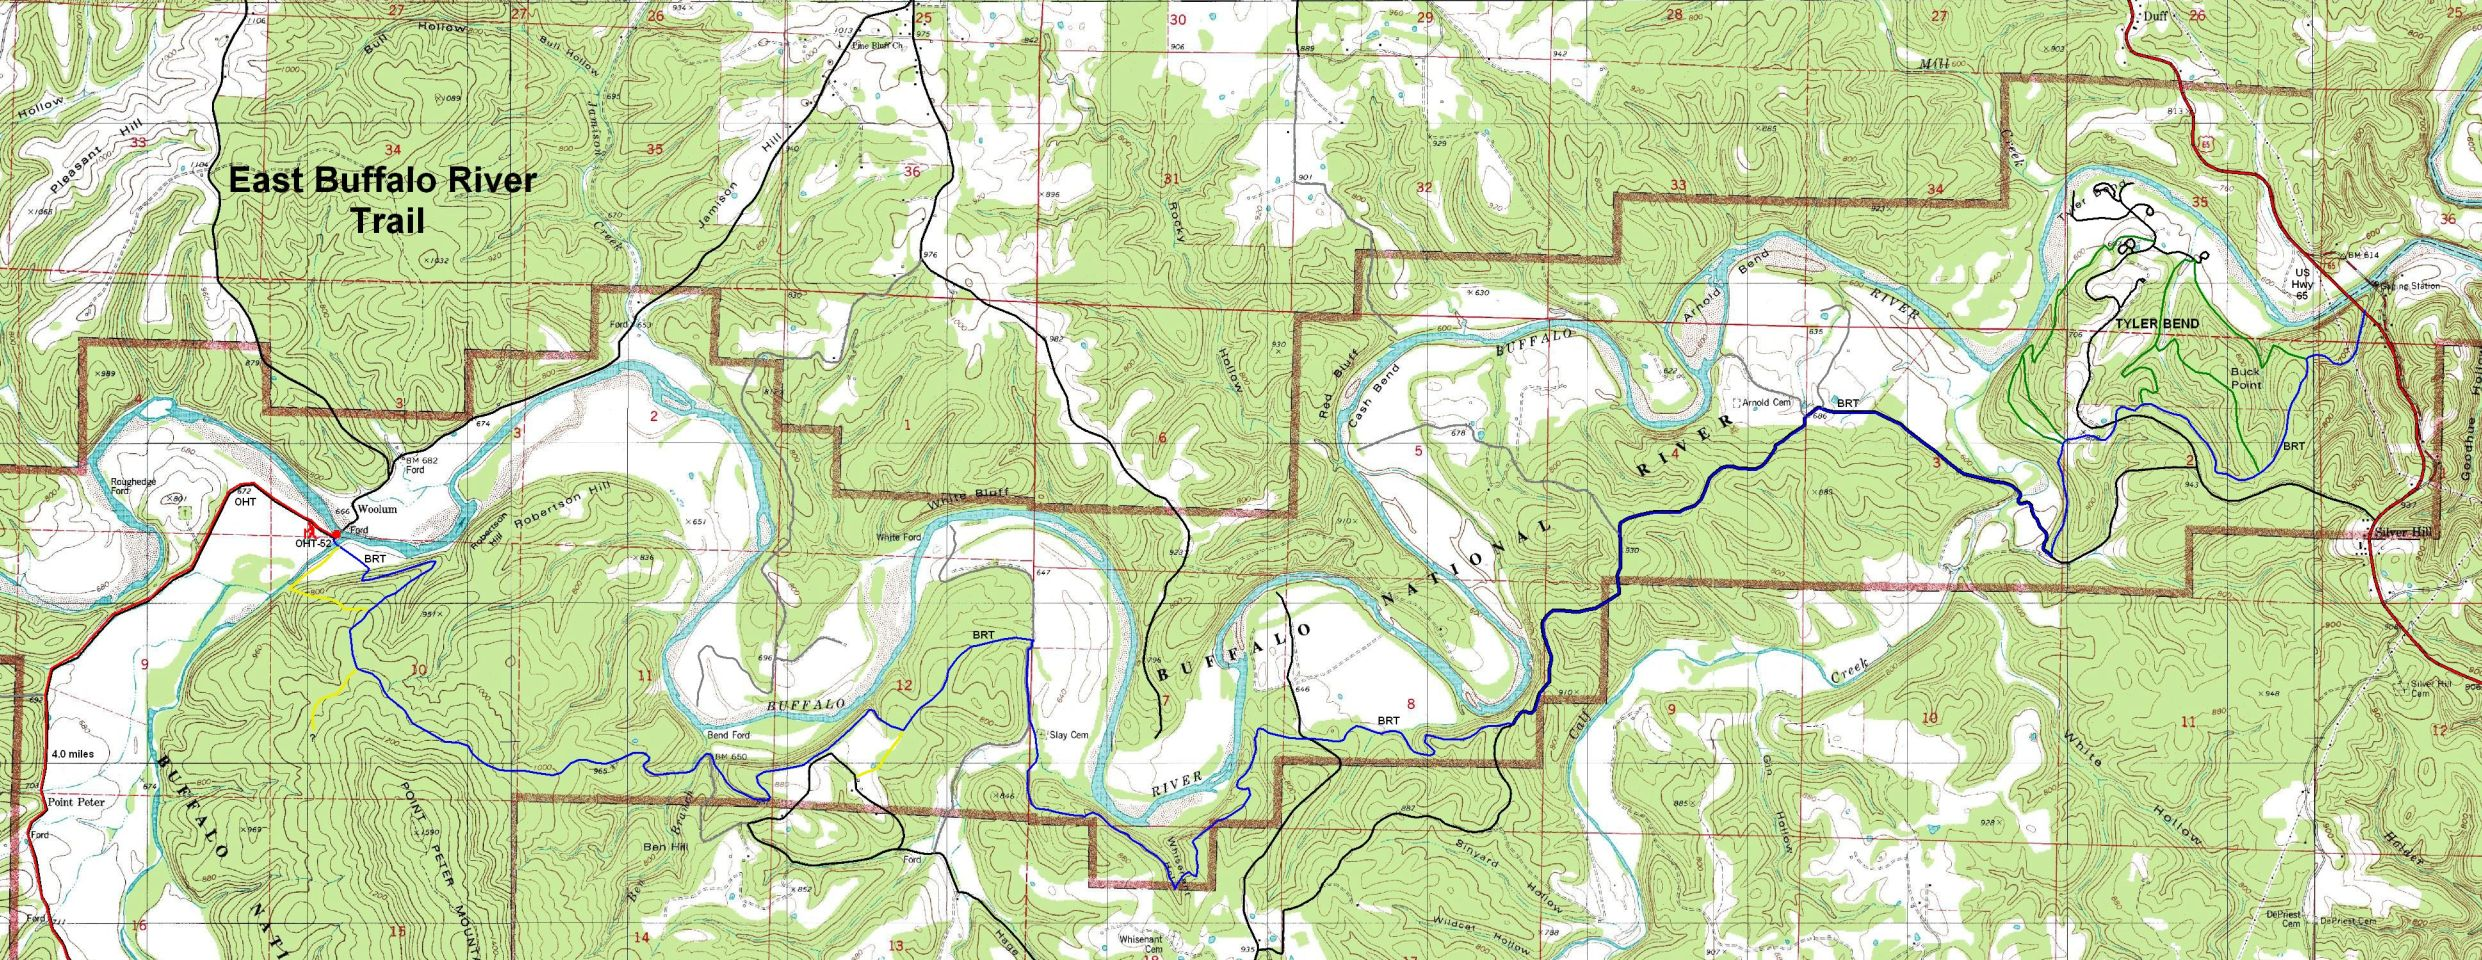 . buffalo river trail eastern section free detailed topo map